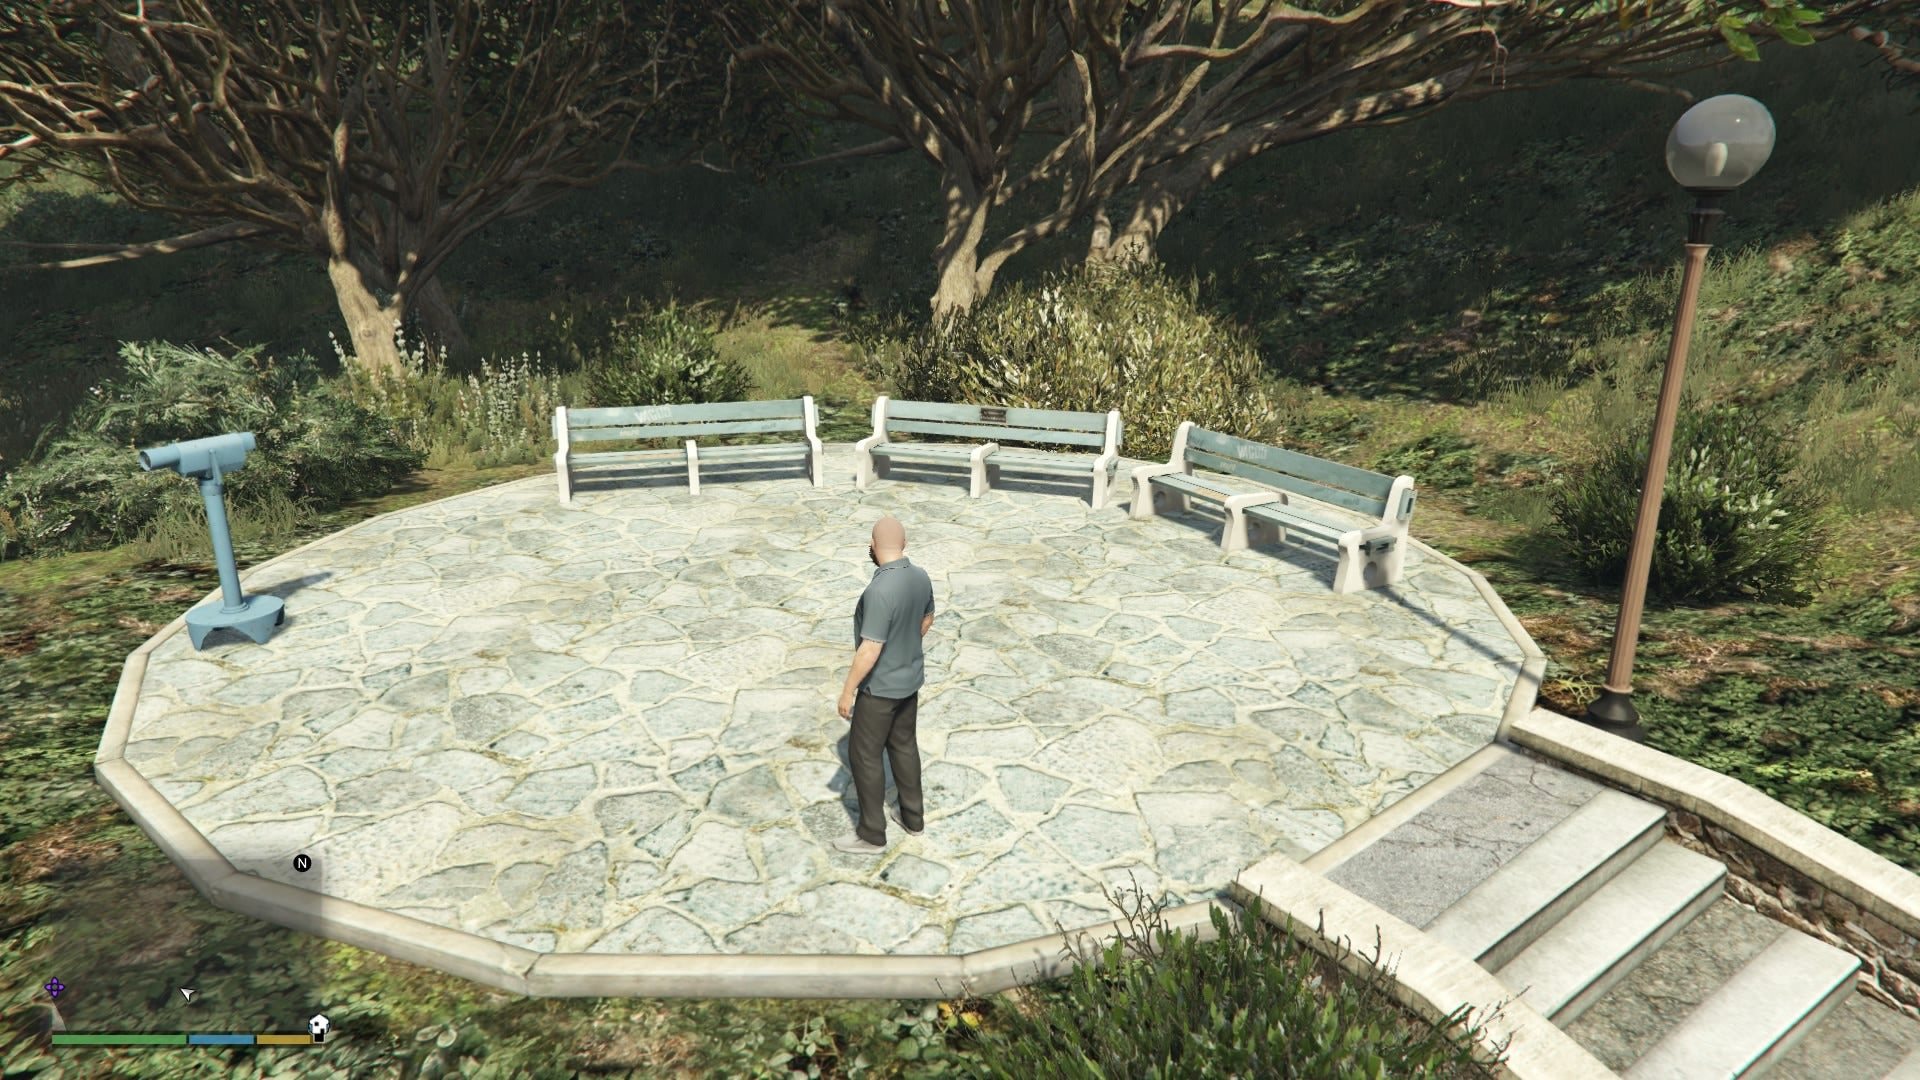 GTA Players Search For Secret Jetpack, Find Touching Memorial Instead